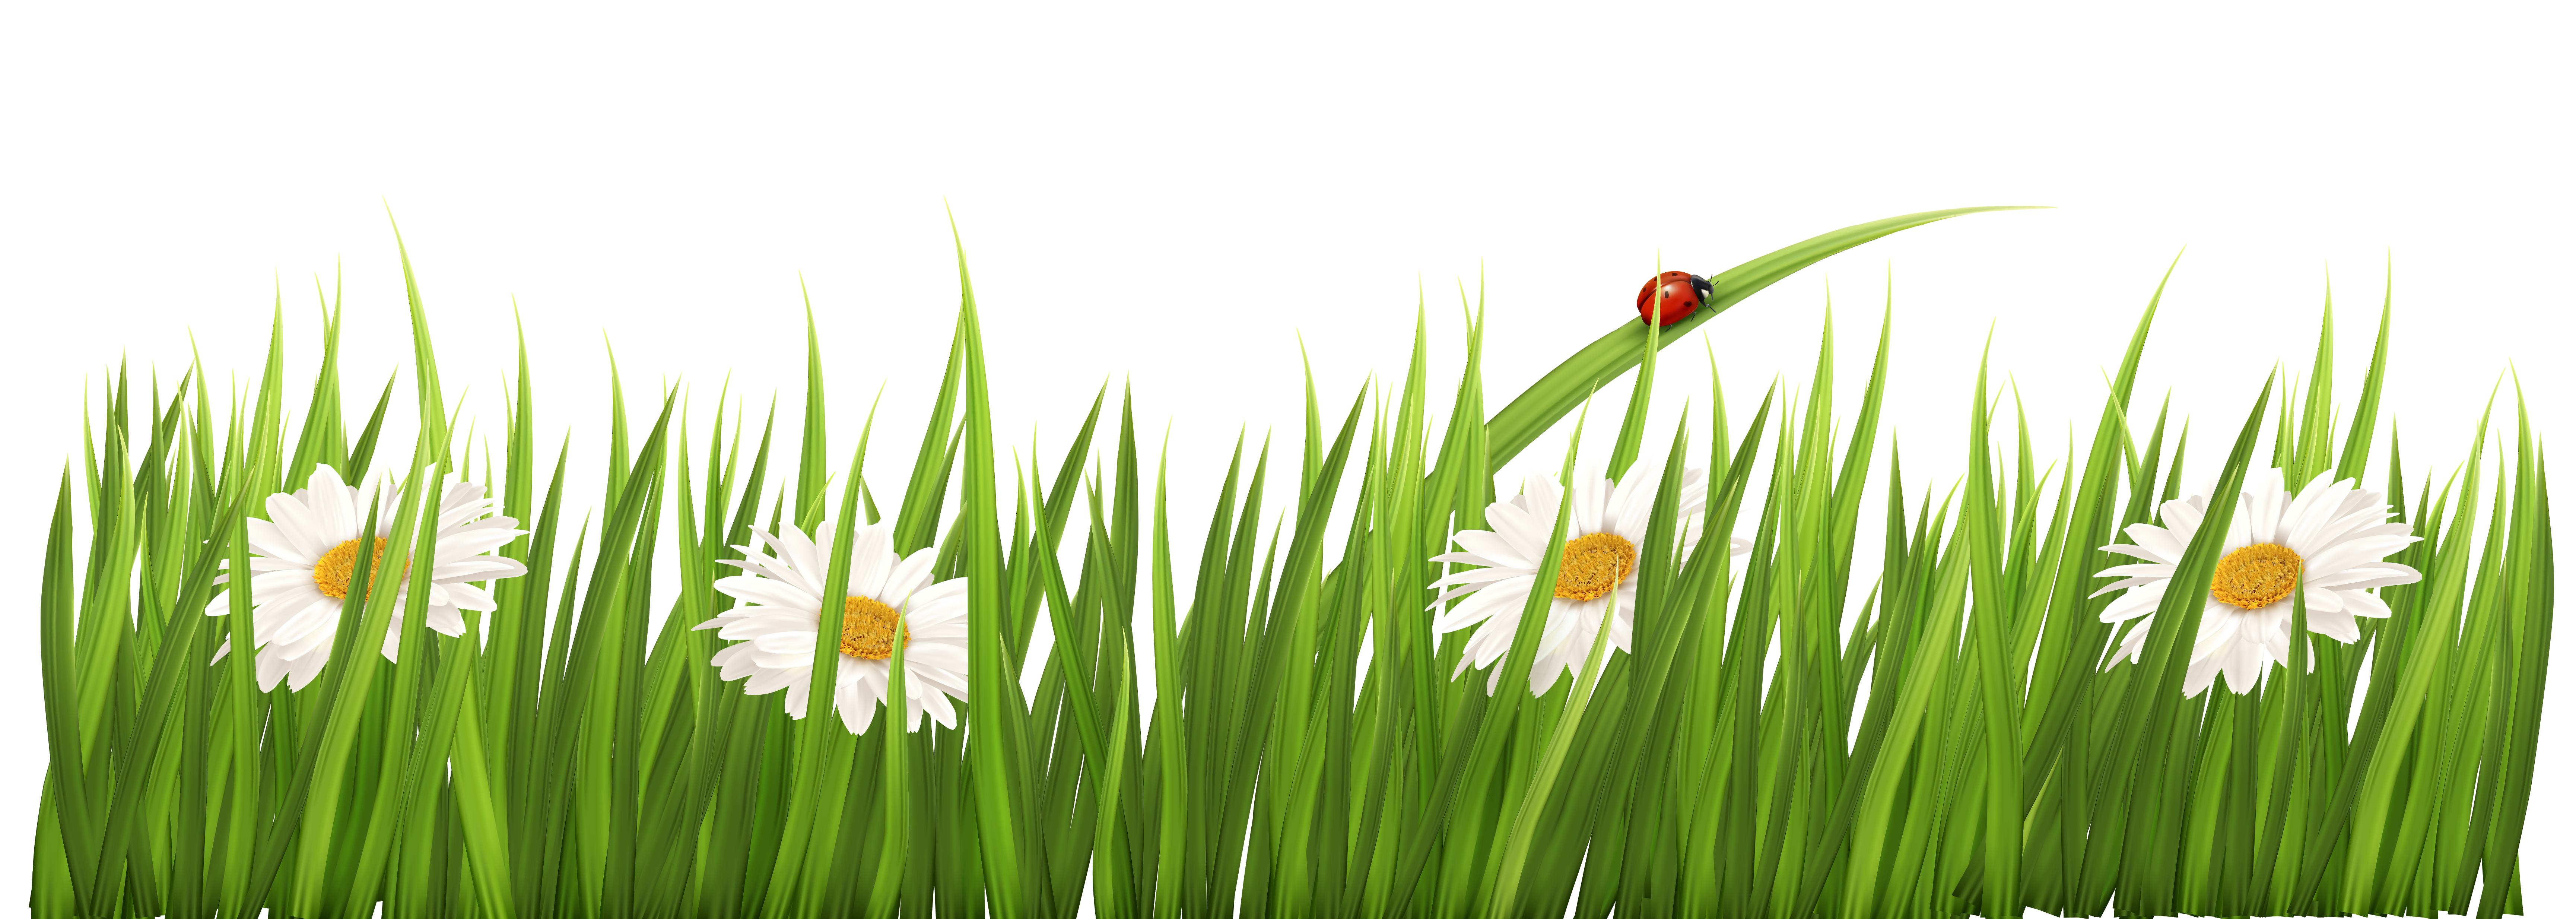 Free flower transparent background. Pencil clipart boarder